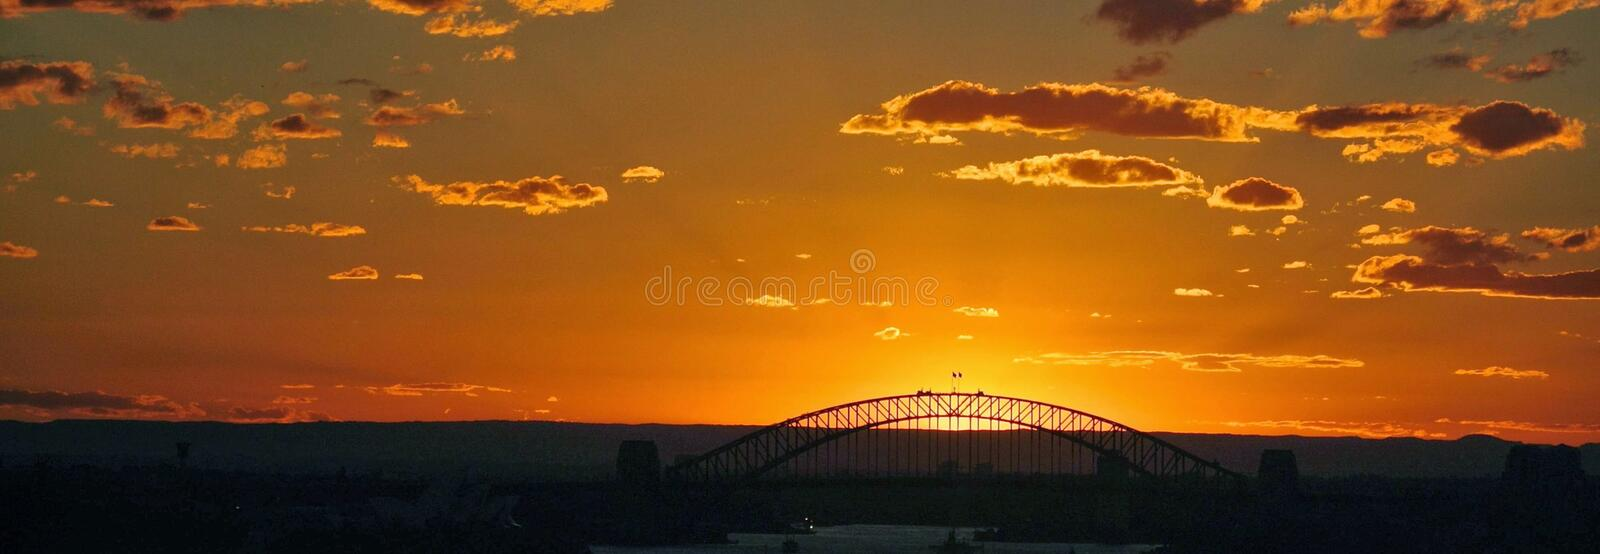 Por do sol com a ponte no fundo fotografia de stock royalty free